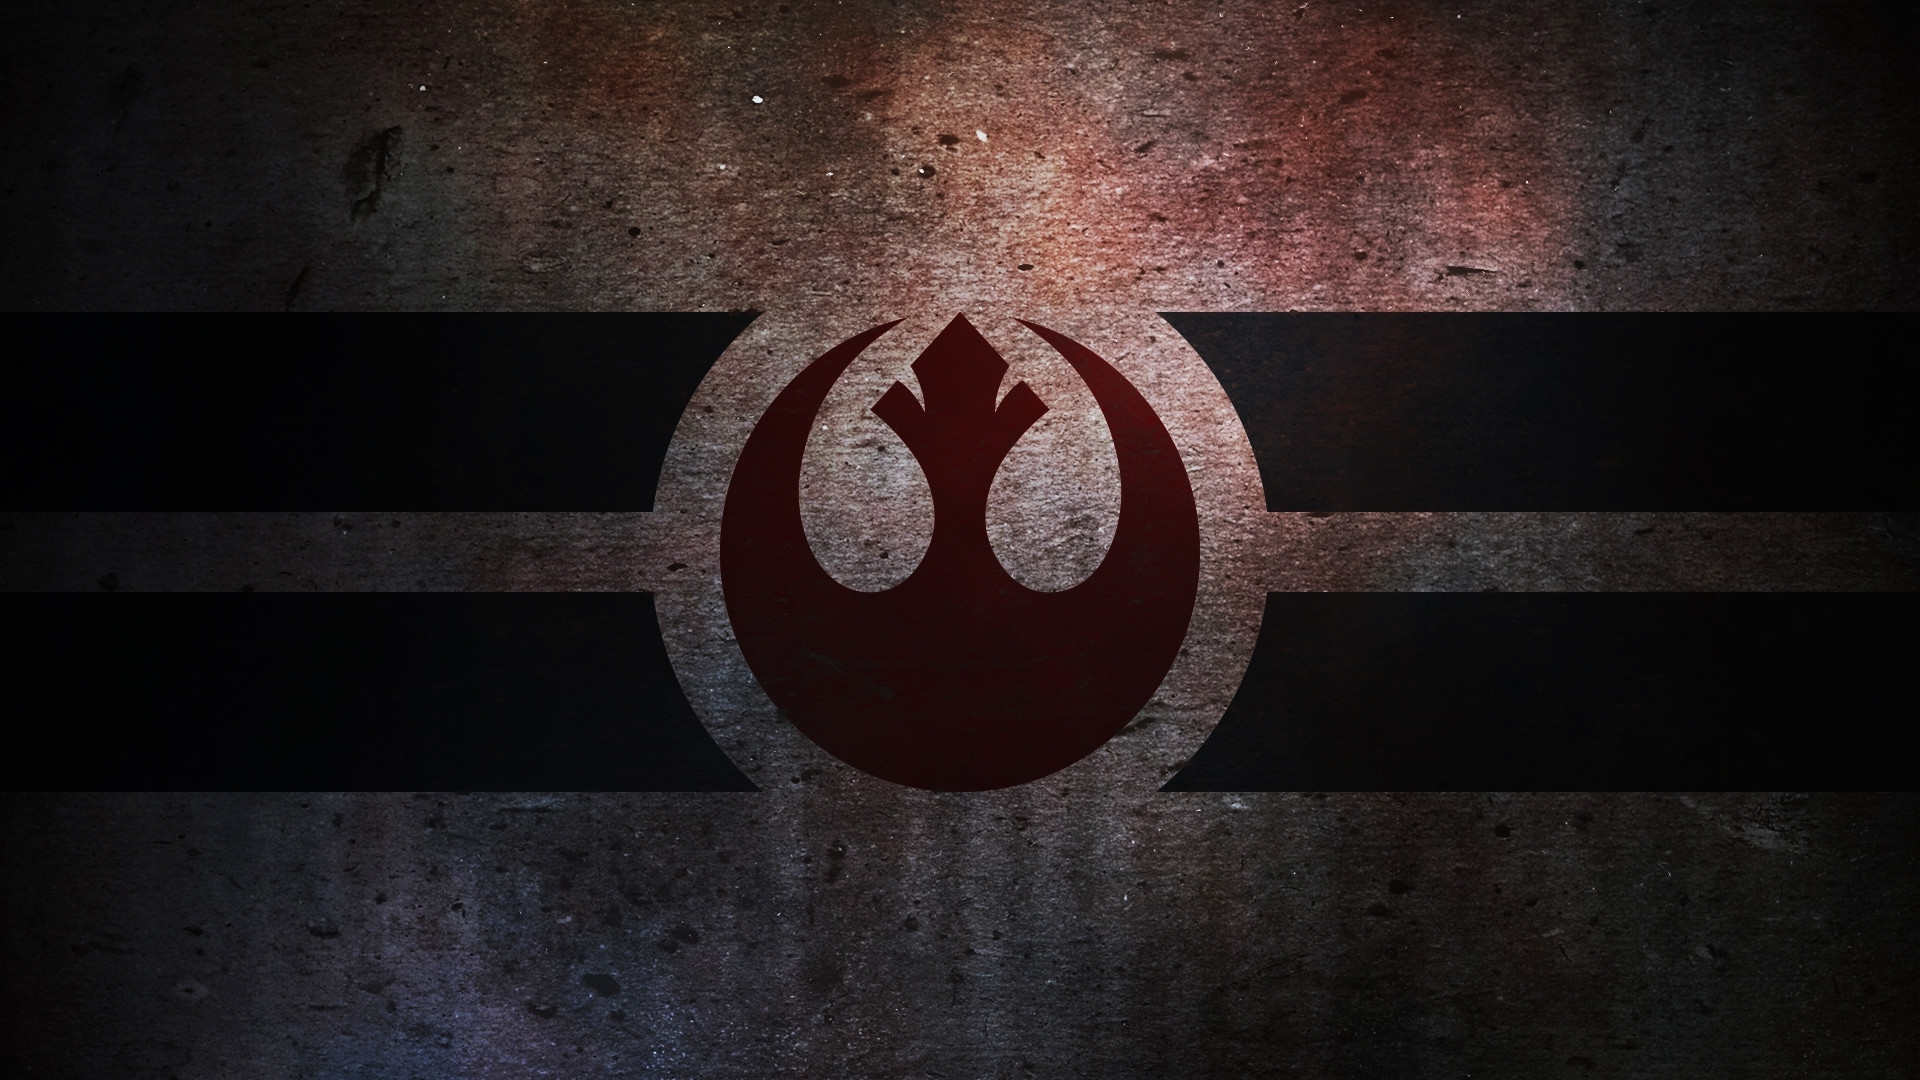 Title Star Wars Jedi Wallpapers 68 Images Dimension 1920 X 1080 File Type JPG JPEG